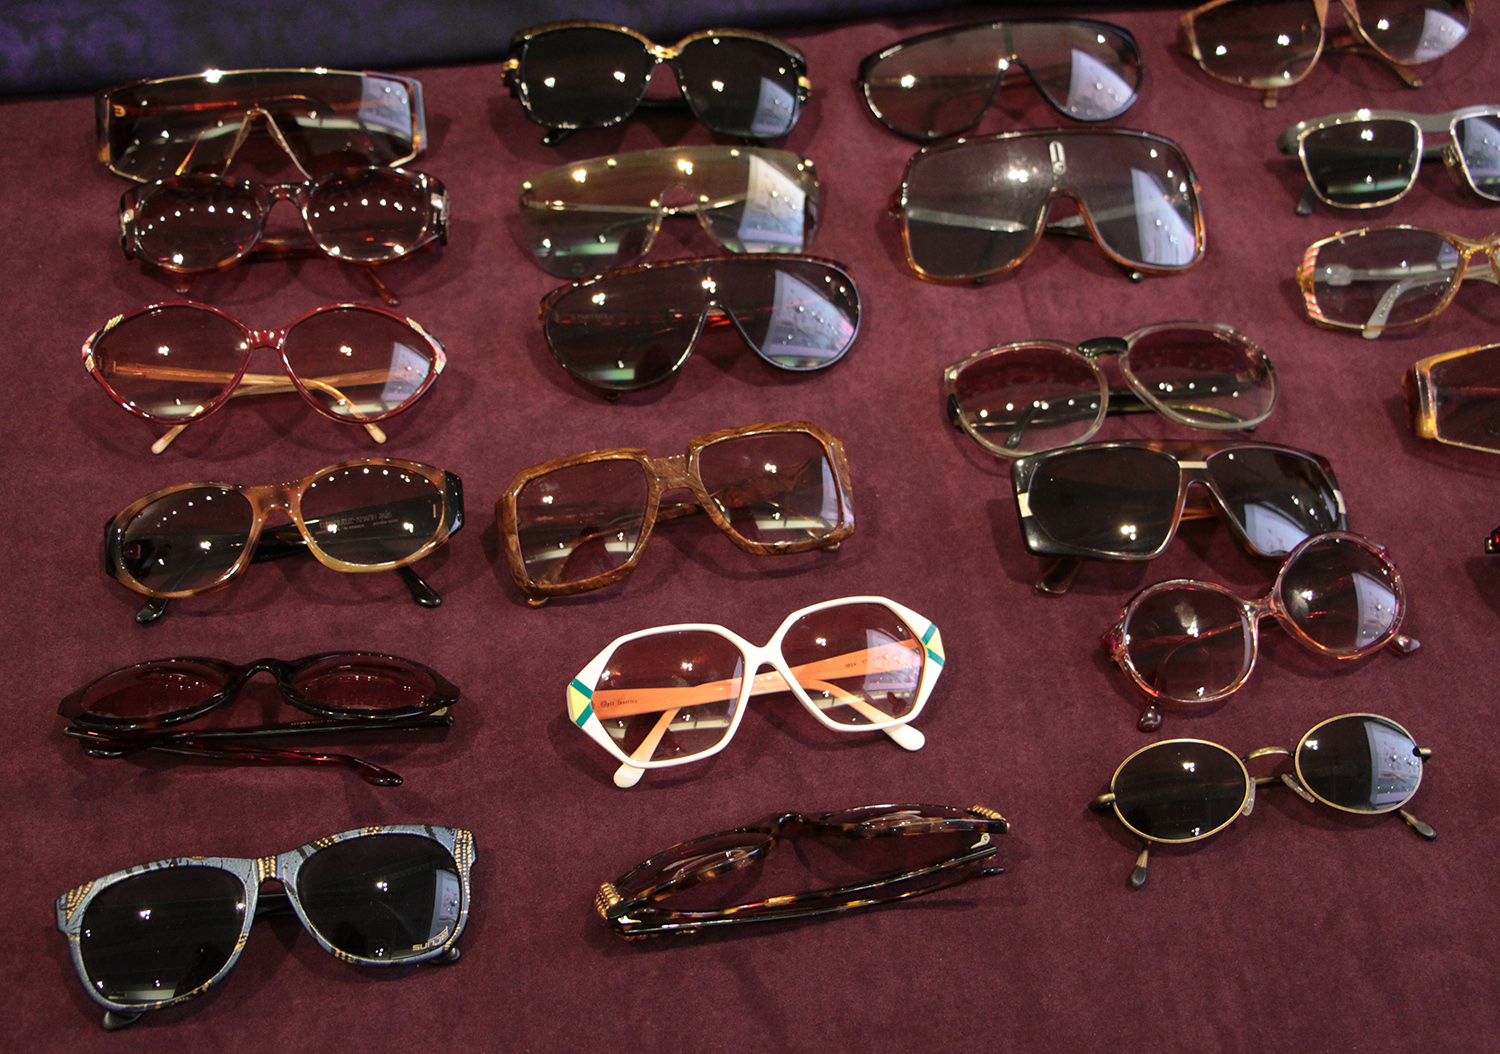 of king's past vintage sunglasses